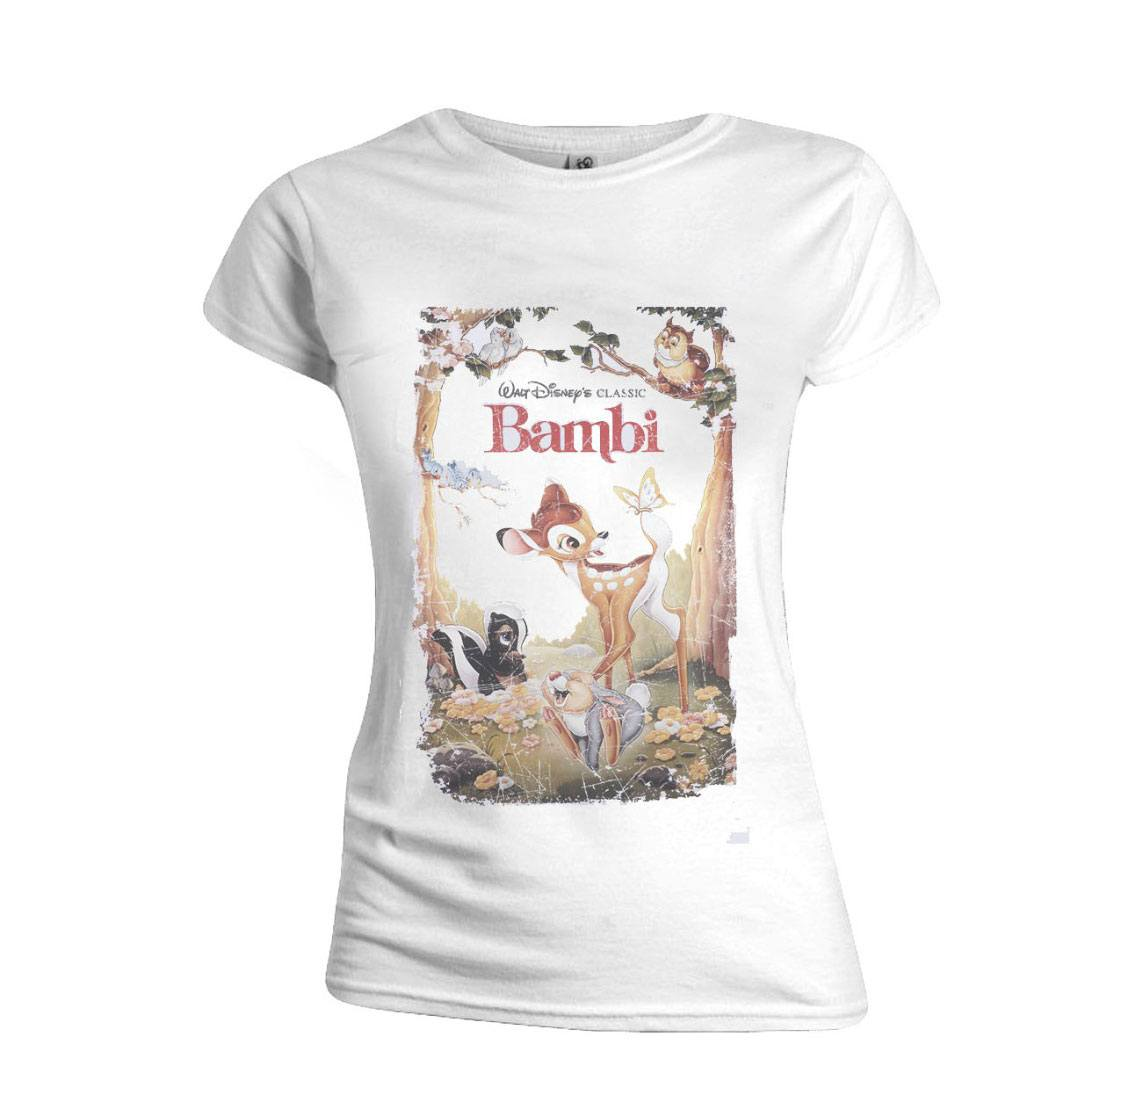 Bambi Ladies T-Shirt Retro Poster Size L